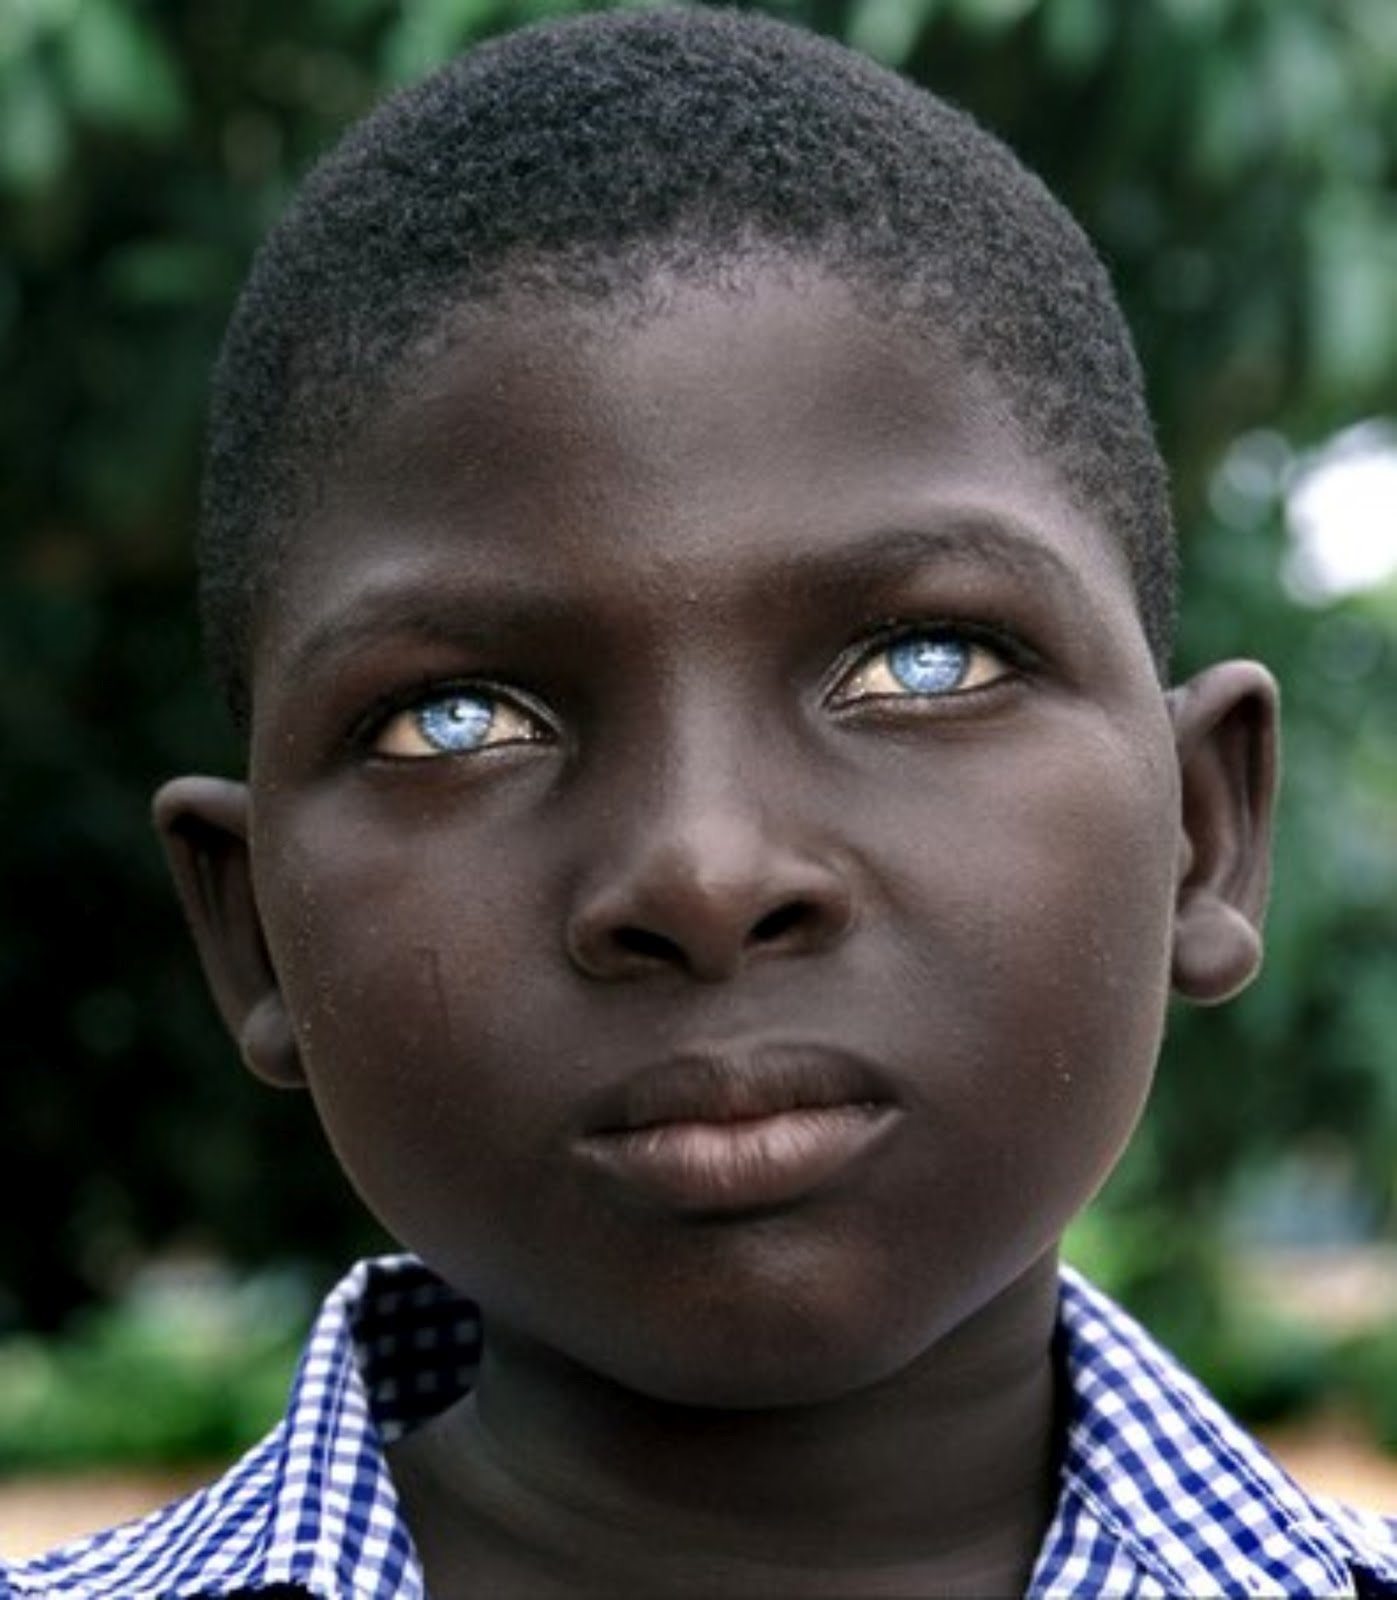 Blue Eye AfricanAmerican